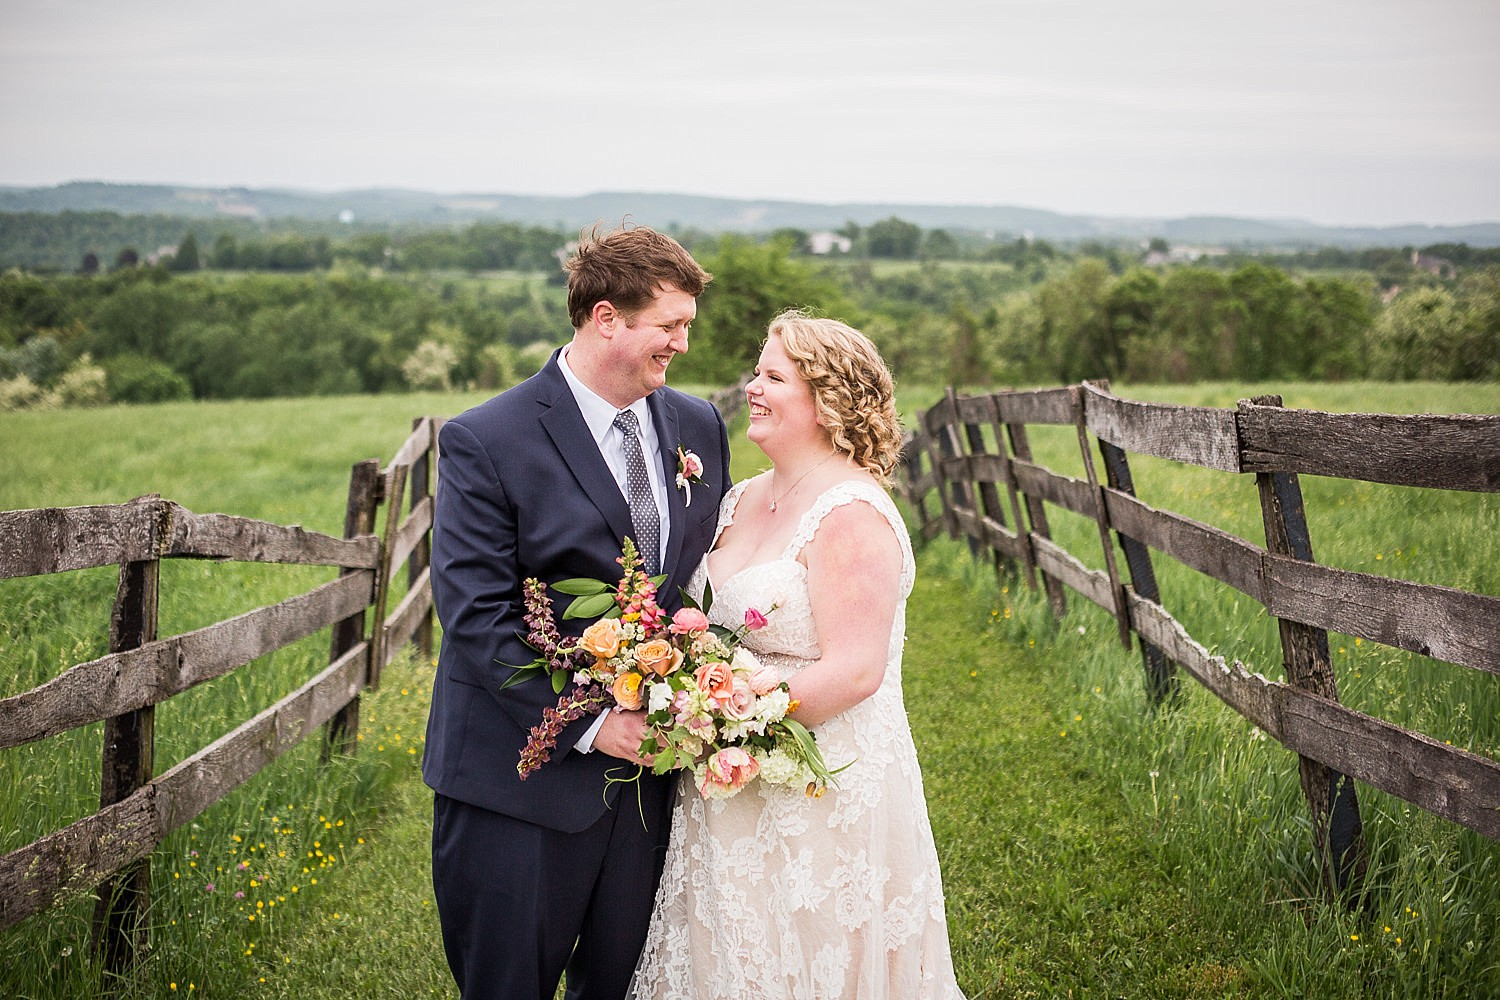 Photo of a bride and groom standing between a fence in a green field overlooking the Susquehanna River.